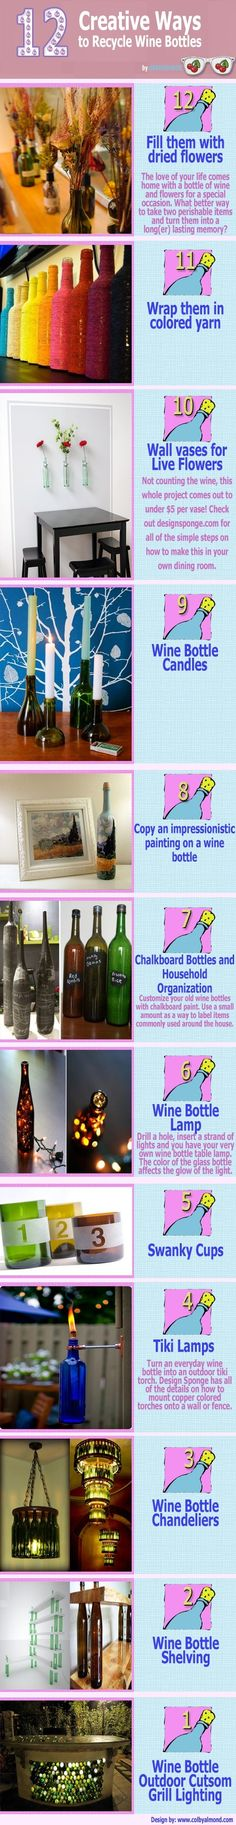 12 creative ways to recicle wine bottles